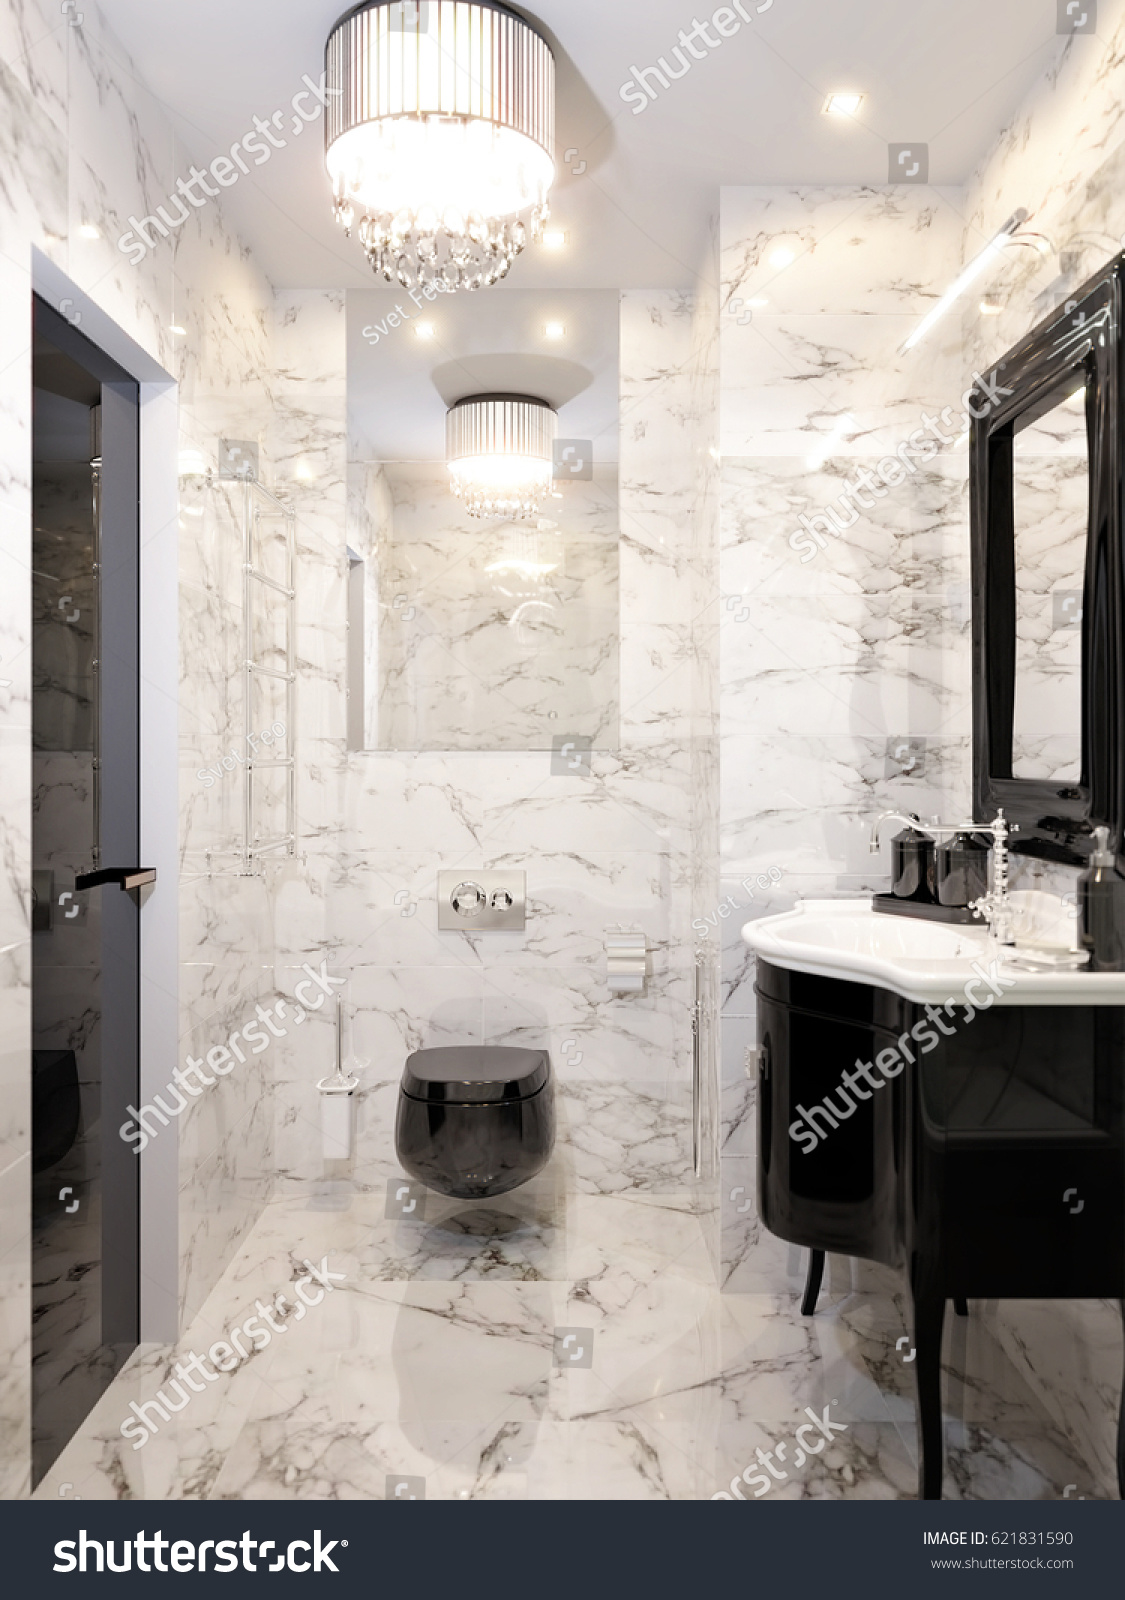 Modern art deco bathrooms - Modern Art Deco Bathroom Interior Design With Gray And White Marble Tiles Black Furniture And